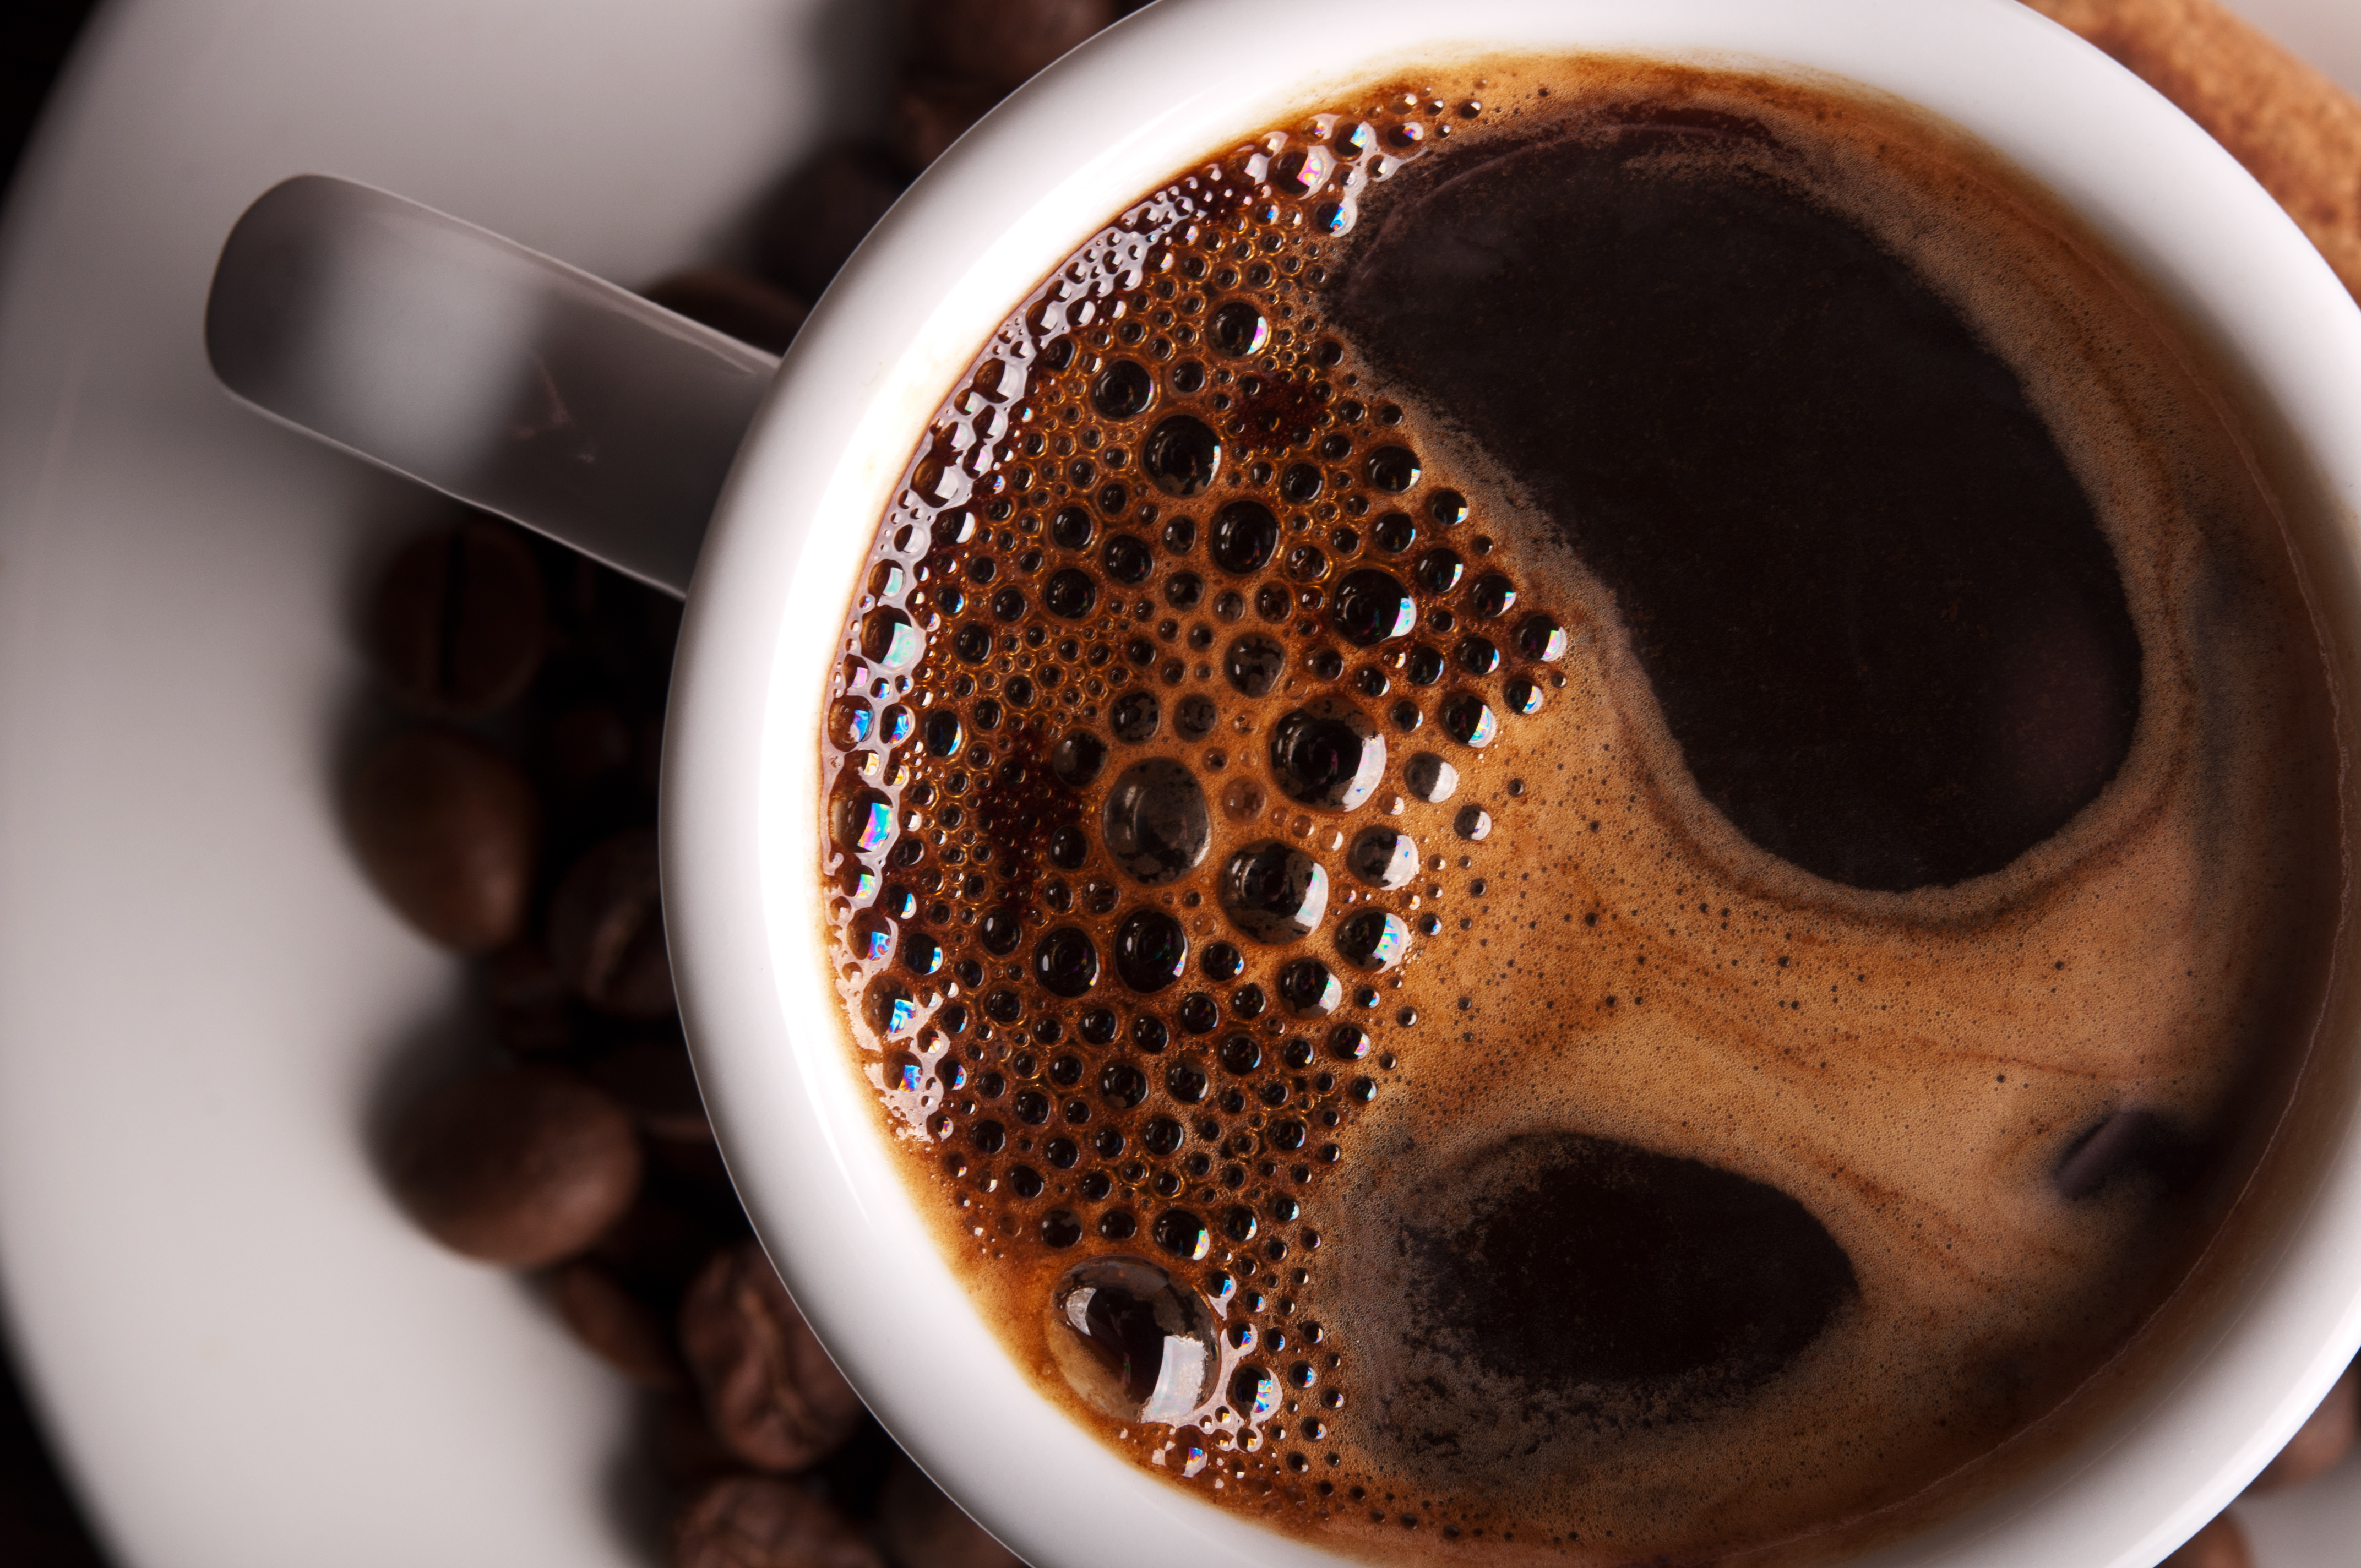 New advice from America's top nutritional committee: coffee can be healthy